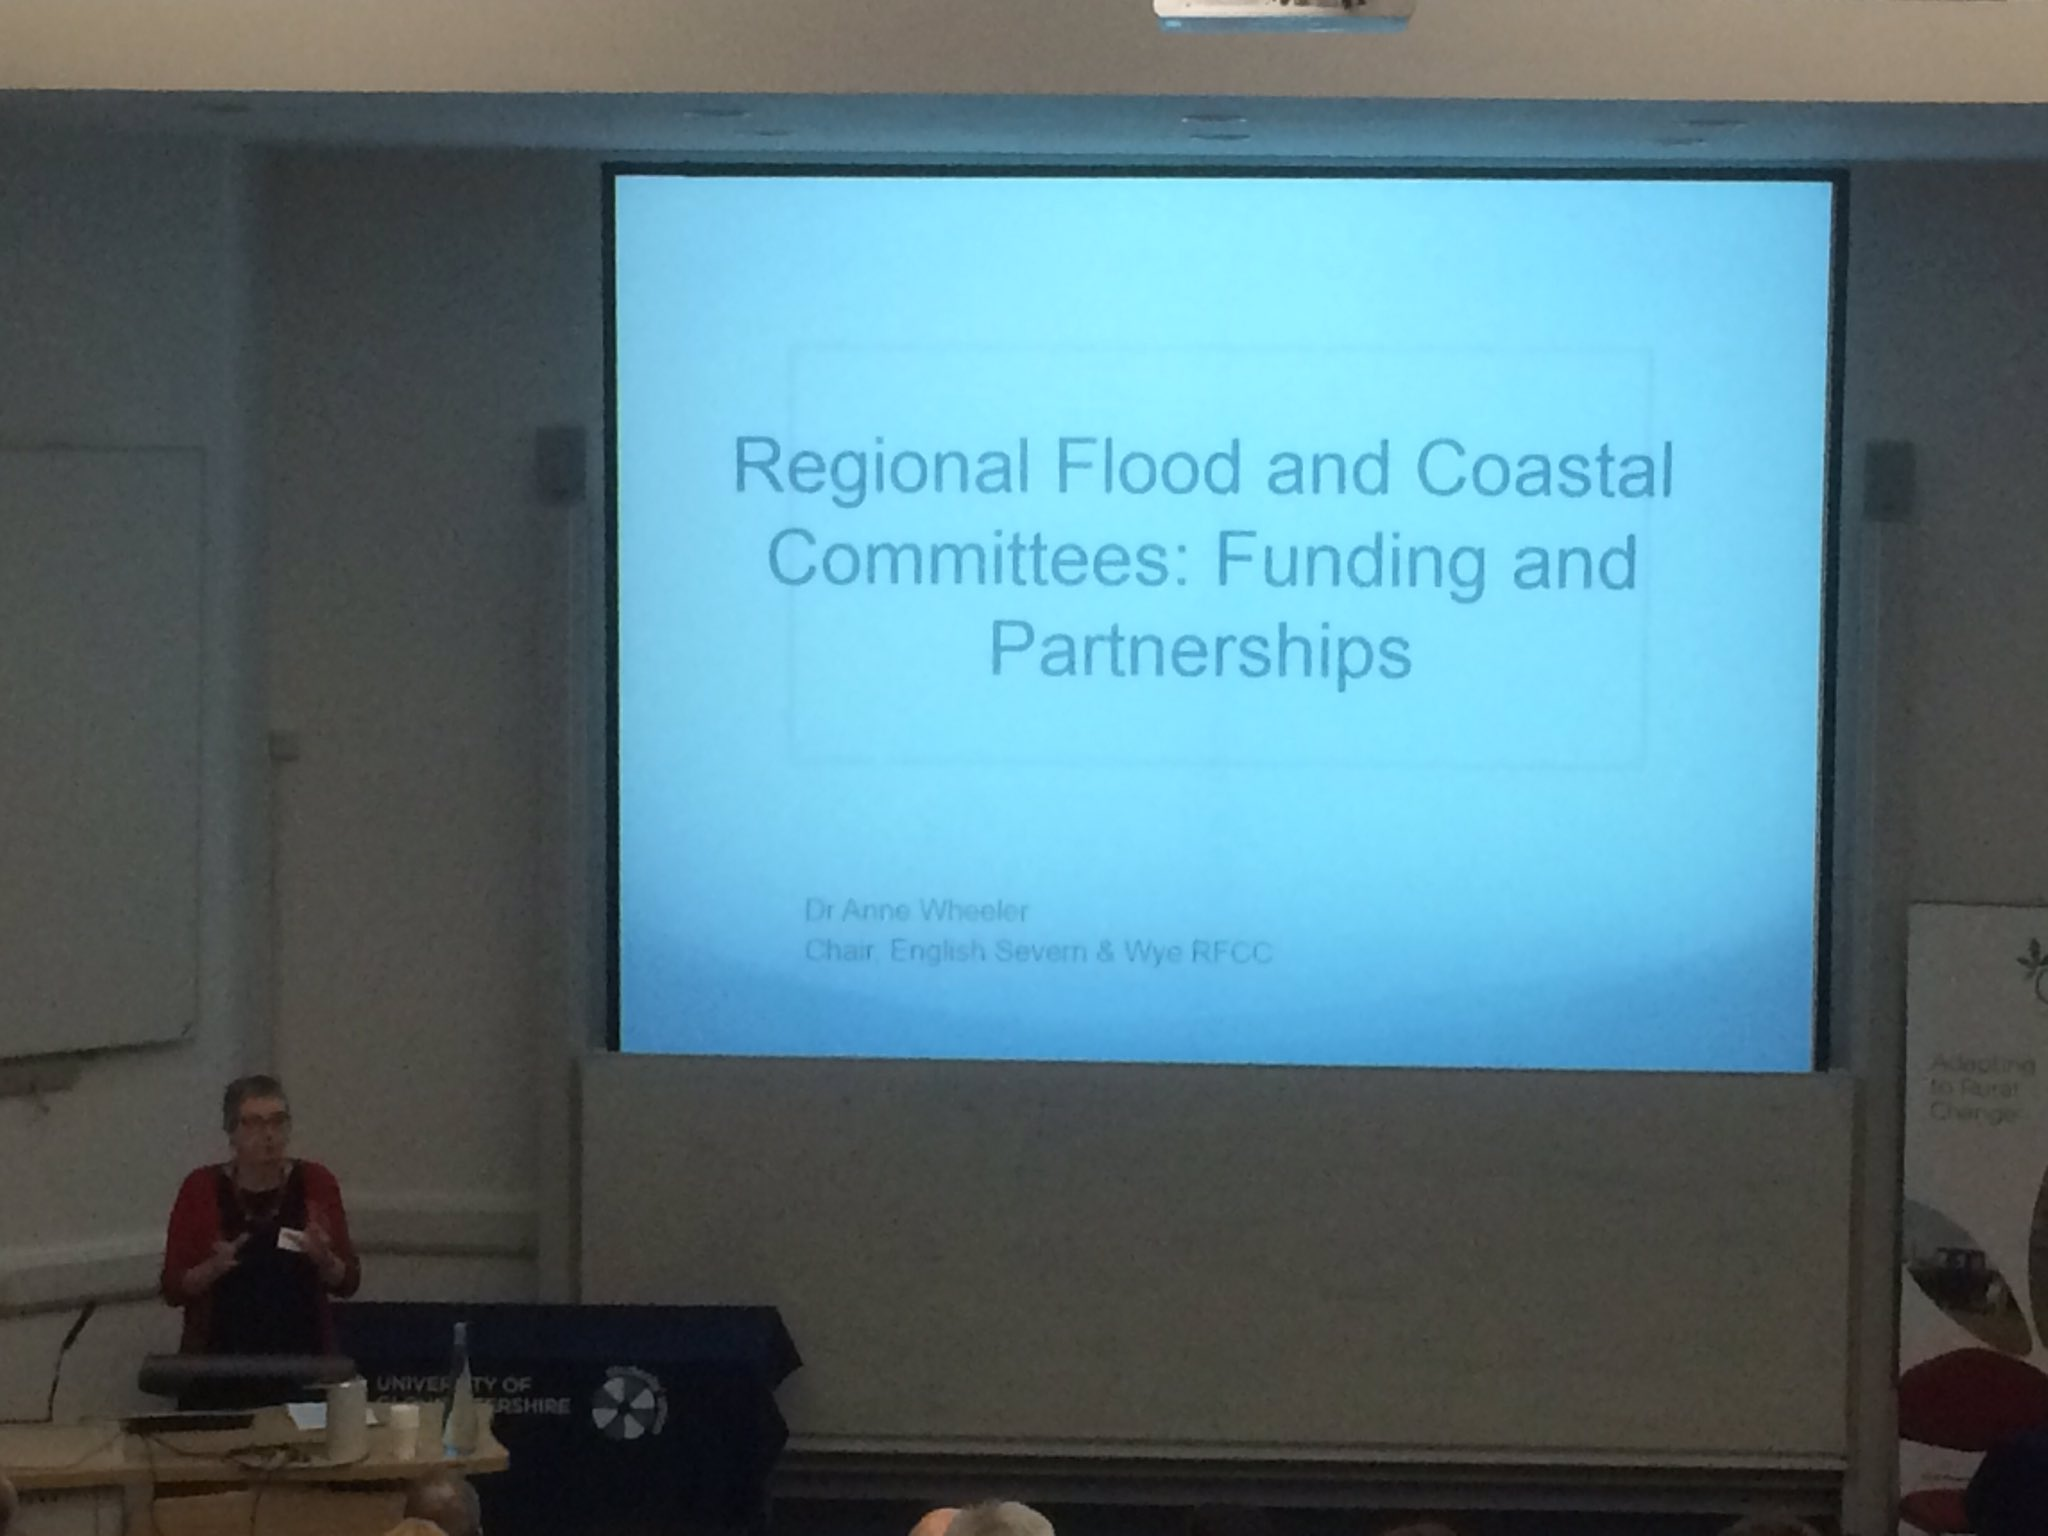 @annewheel up next at #GlosNFM17 talking about Regional Flood and Coastal Committees https://t.co/vOOHSn1zff